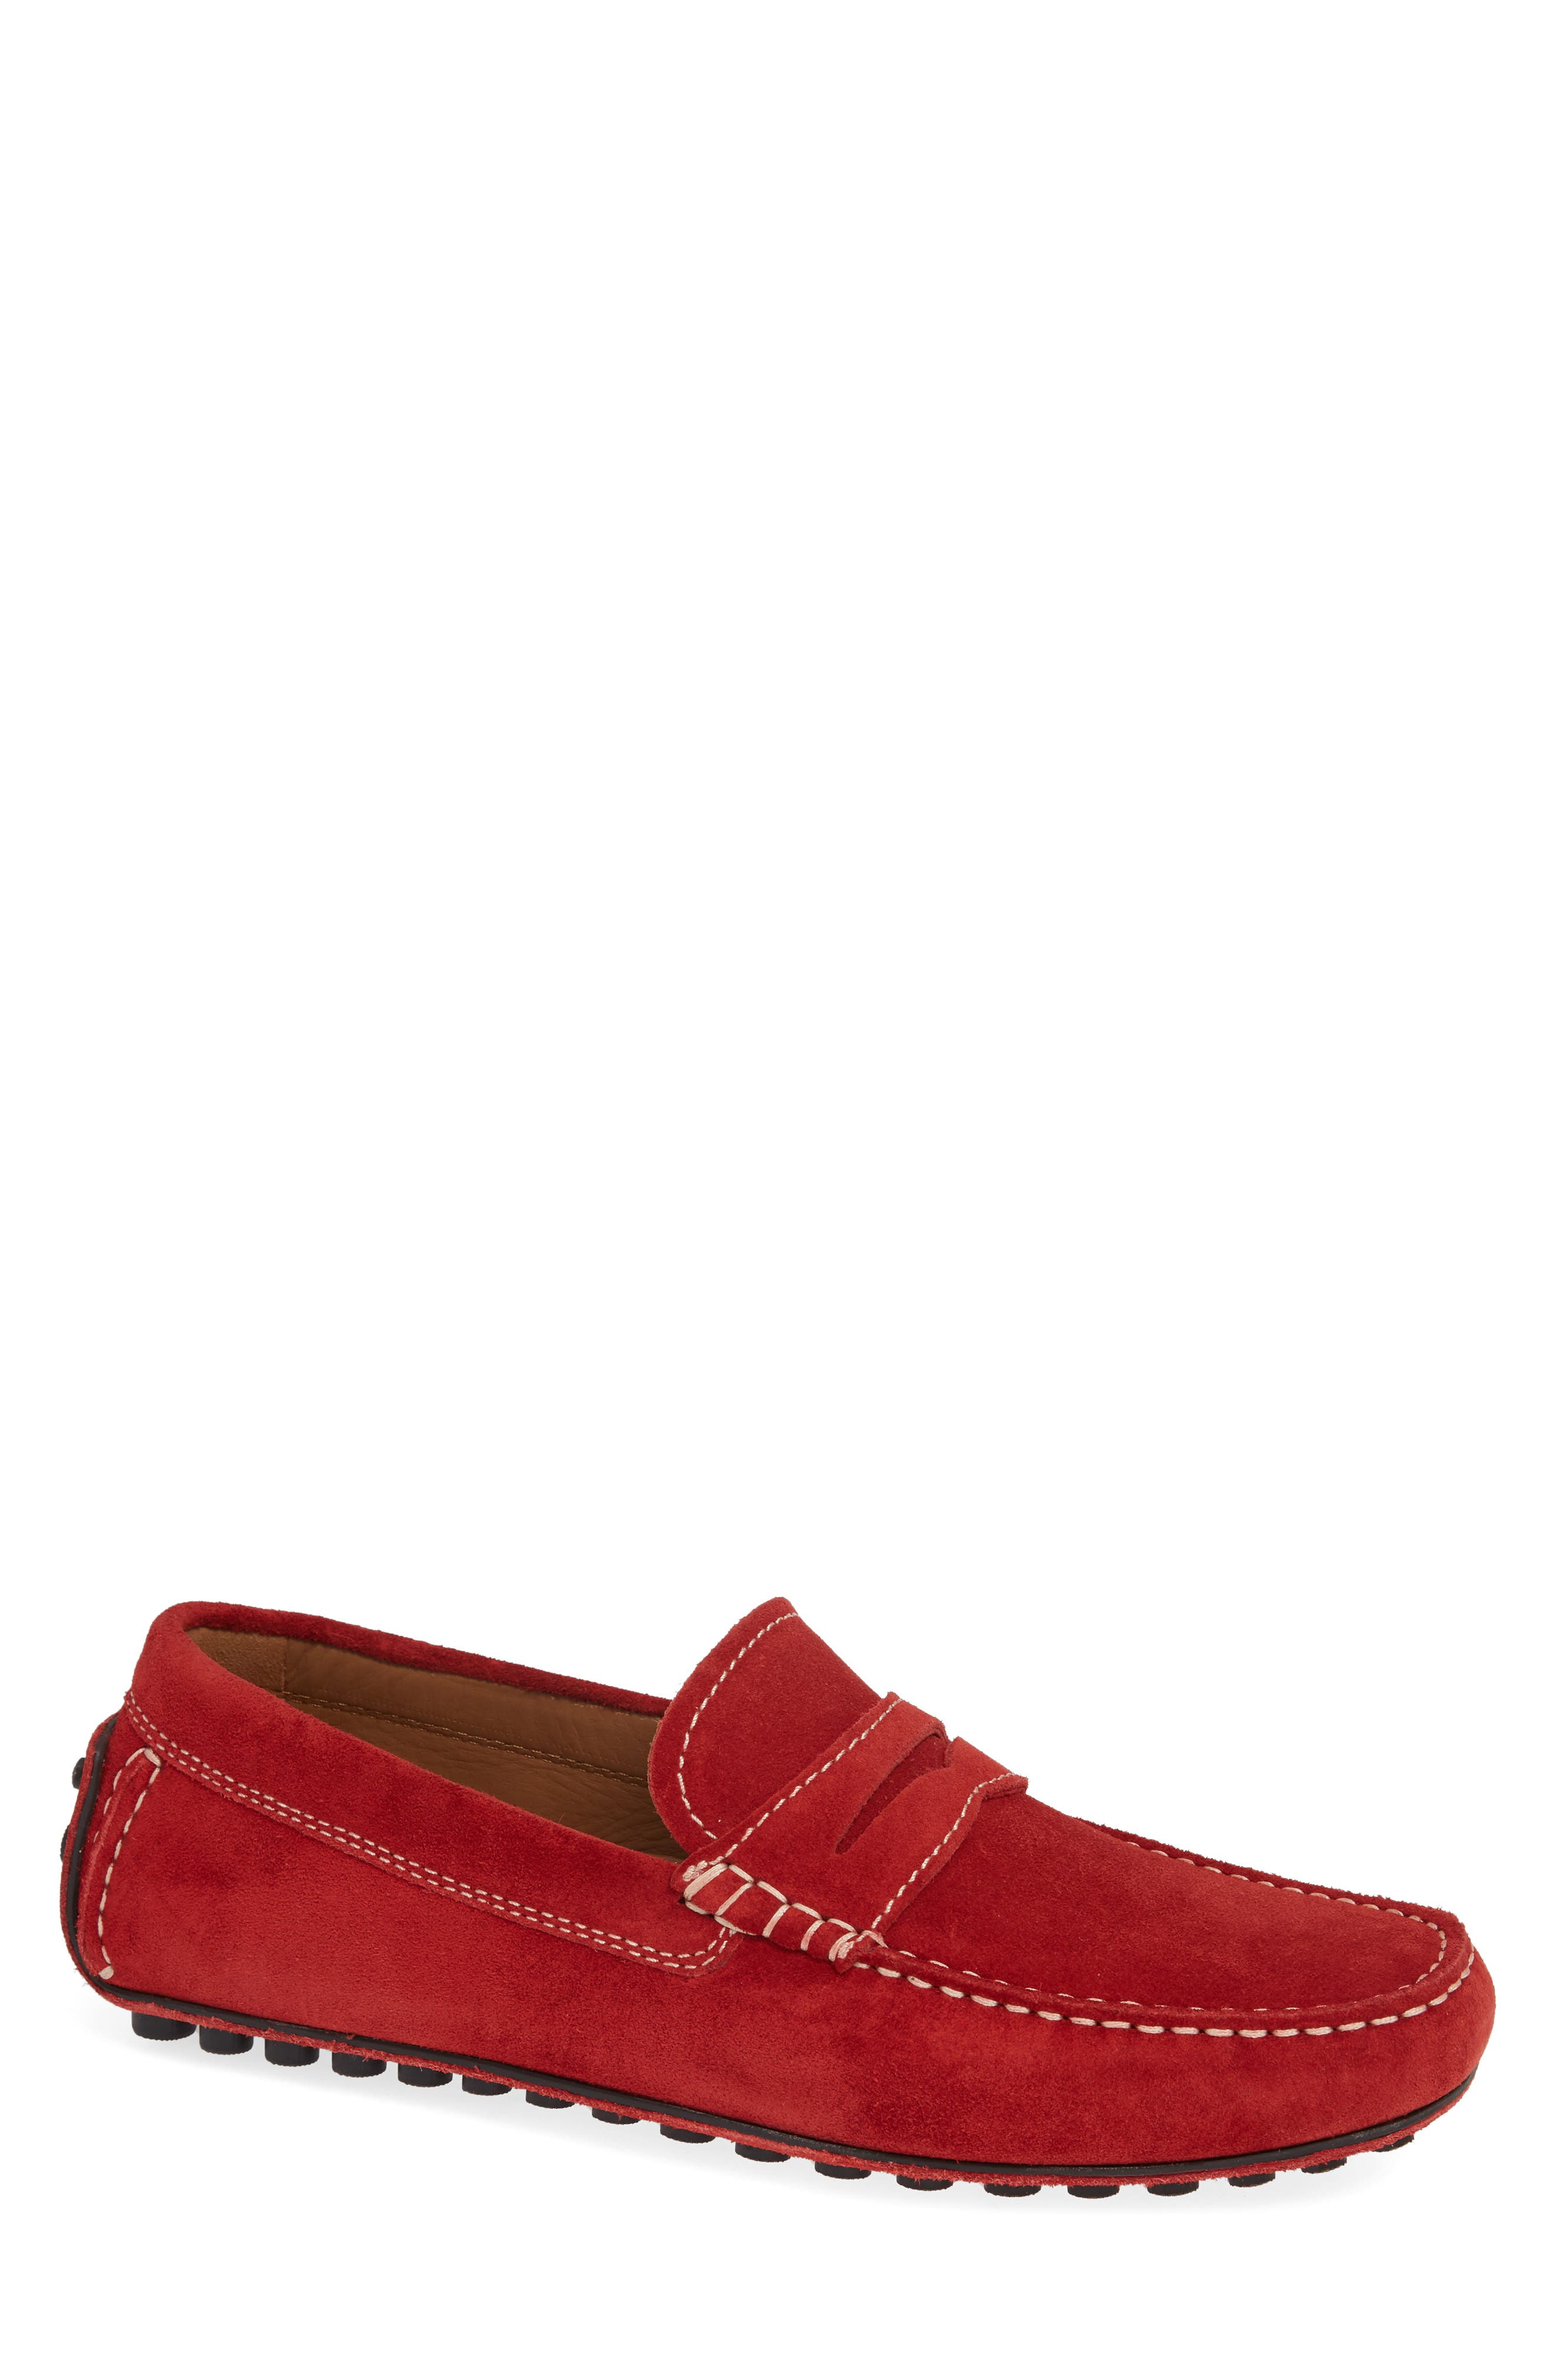 ROBERT TALBOTT Le Mans Penny Driving Loafer in Red Suede